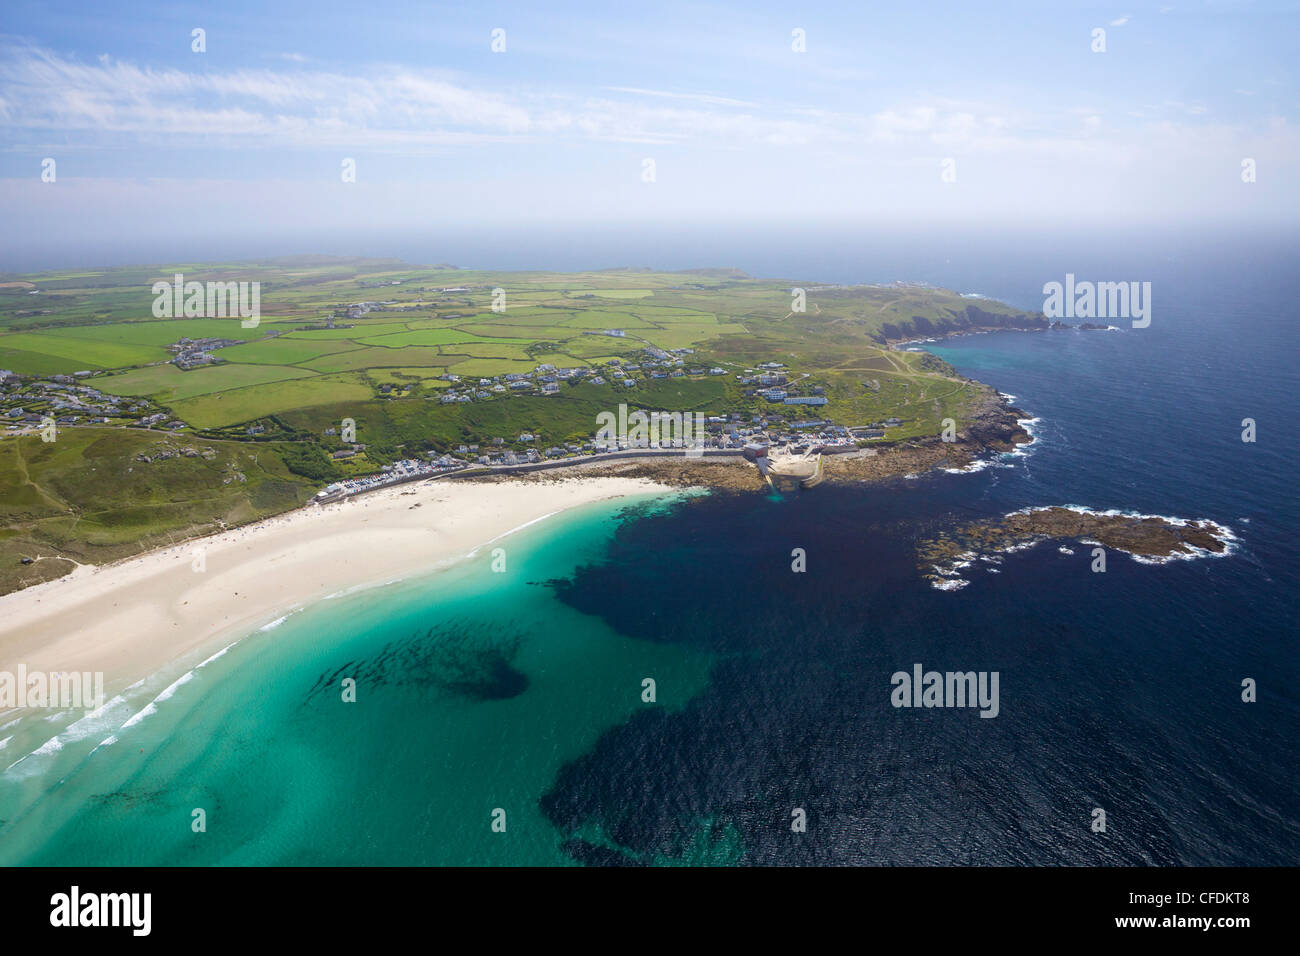 Aerial photo of Sennen Cove and Lands End Peninsula, West Penwith, Cornwall, England, United Kingdom, Europe - Stock Image